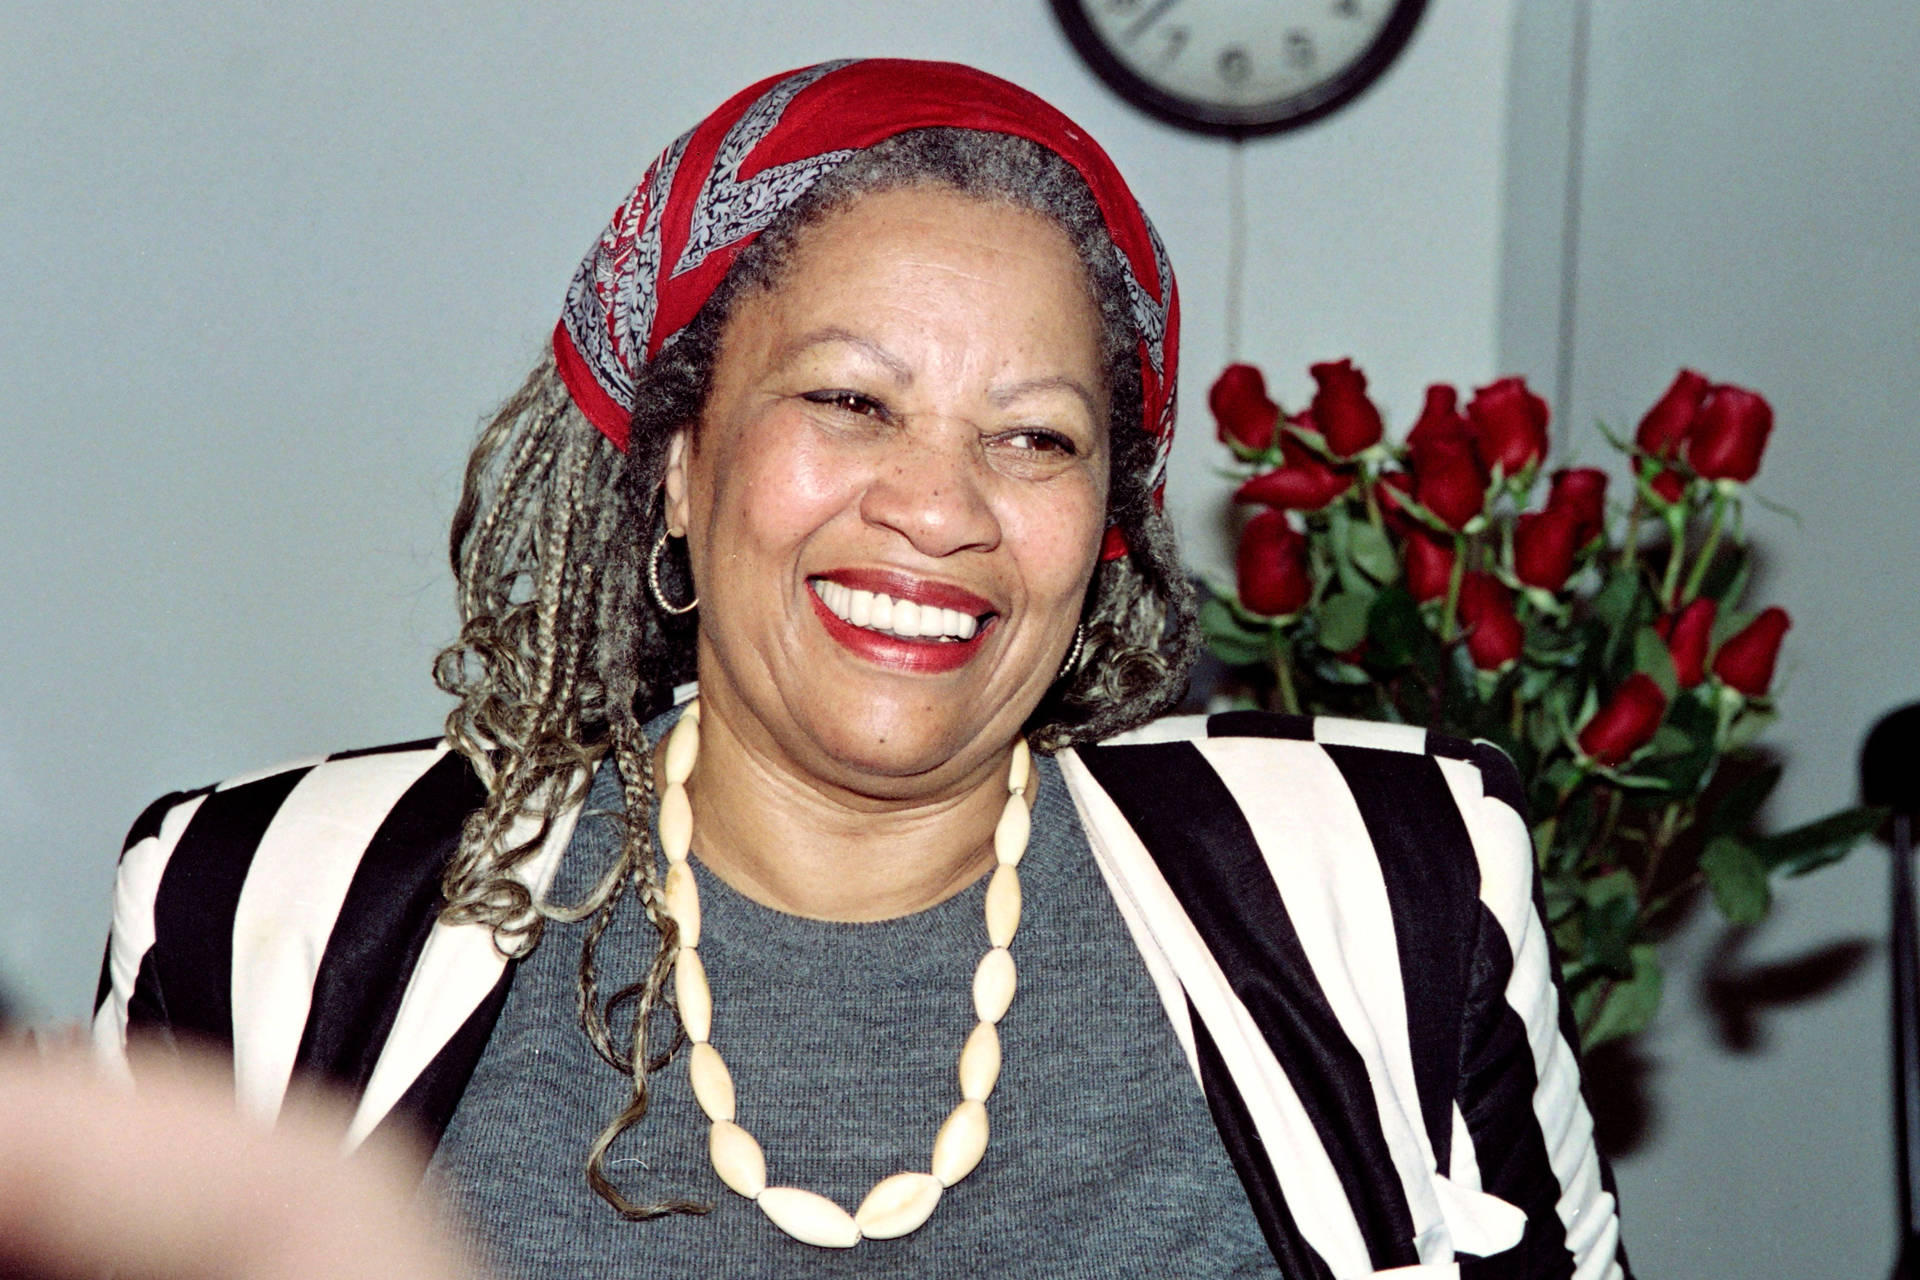 """U.S. author Toni Morrison smiles in her office at Princeton University in New Jersey, while being interviewed by reporters on October 7, 1993. - Morrison said """"I am outrageously happy"""" after hearing that she had won the Nobel Prize for Literature. DON EMMERT/AFP/Getty Images"""